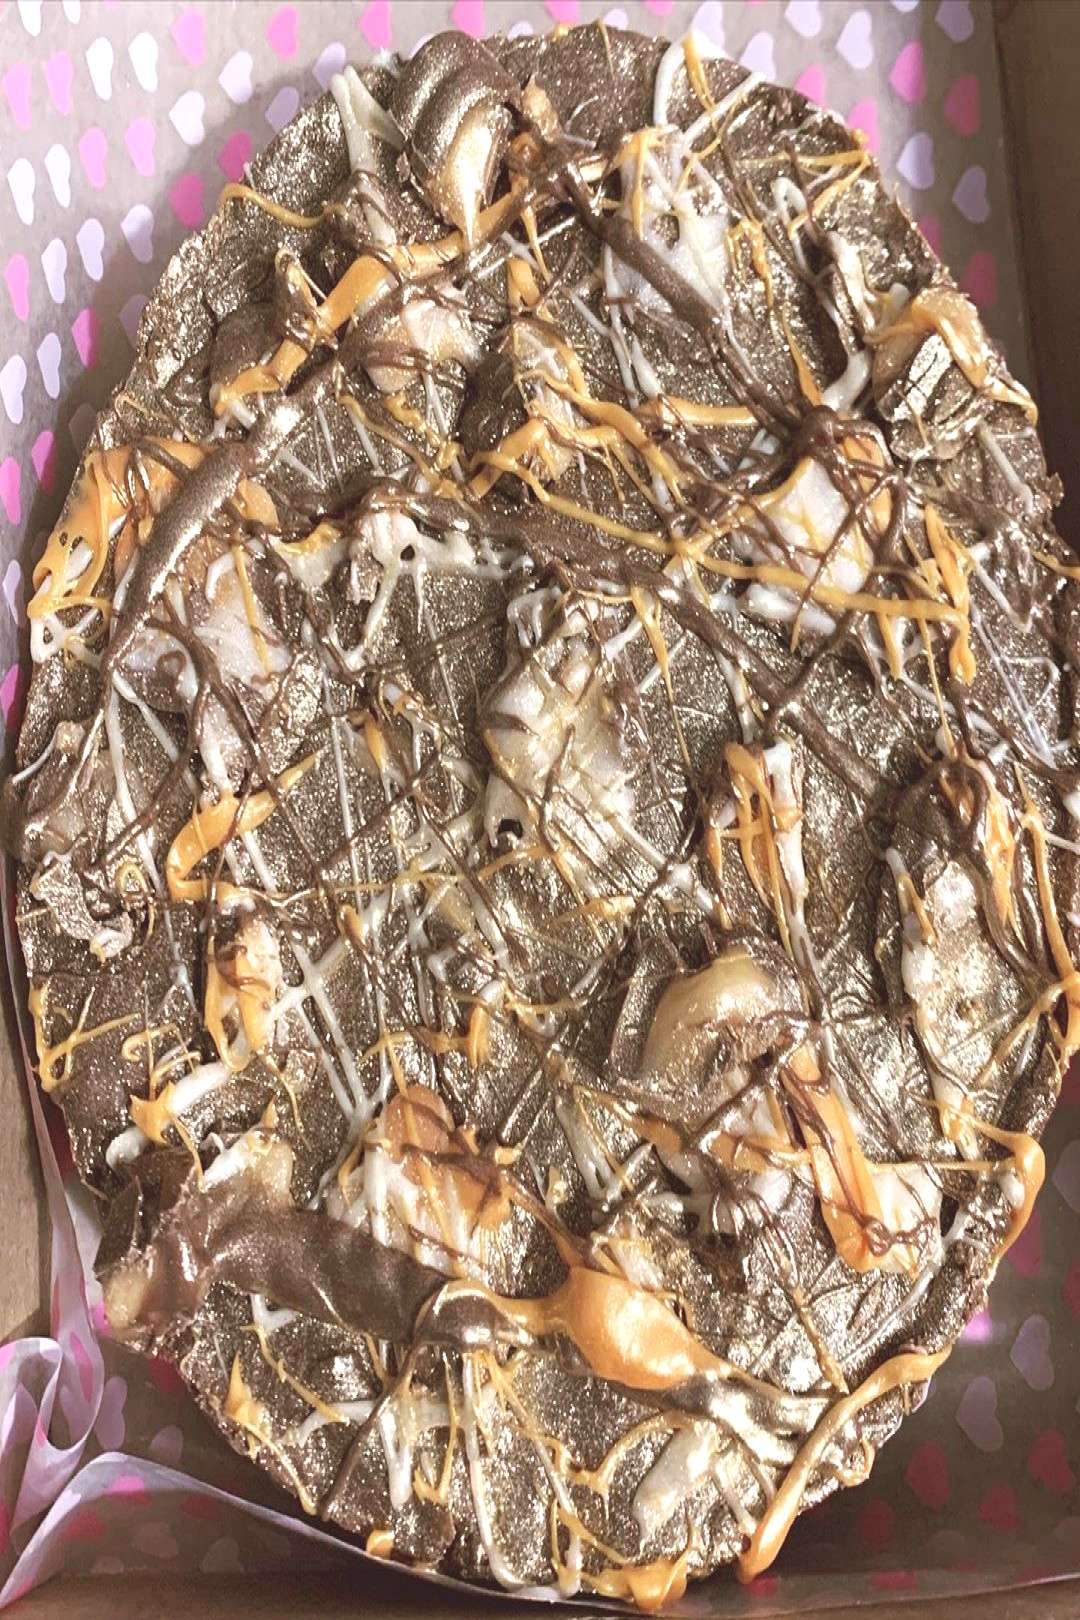 Creme egg rocky road, without marshmallows because who likes mars